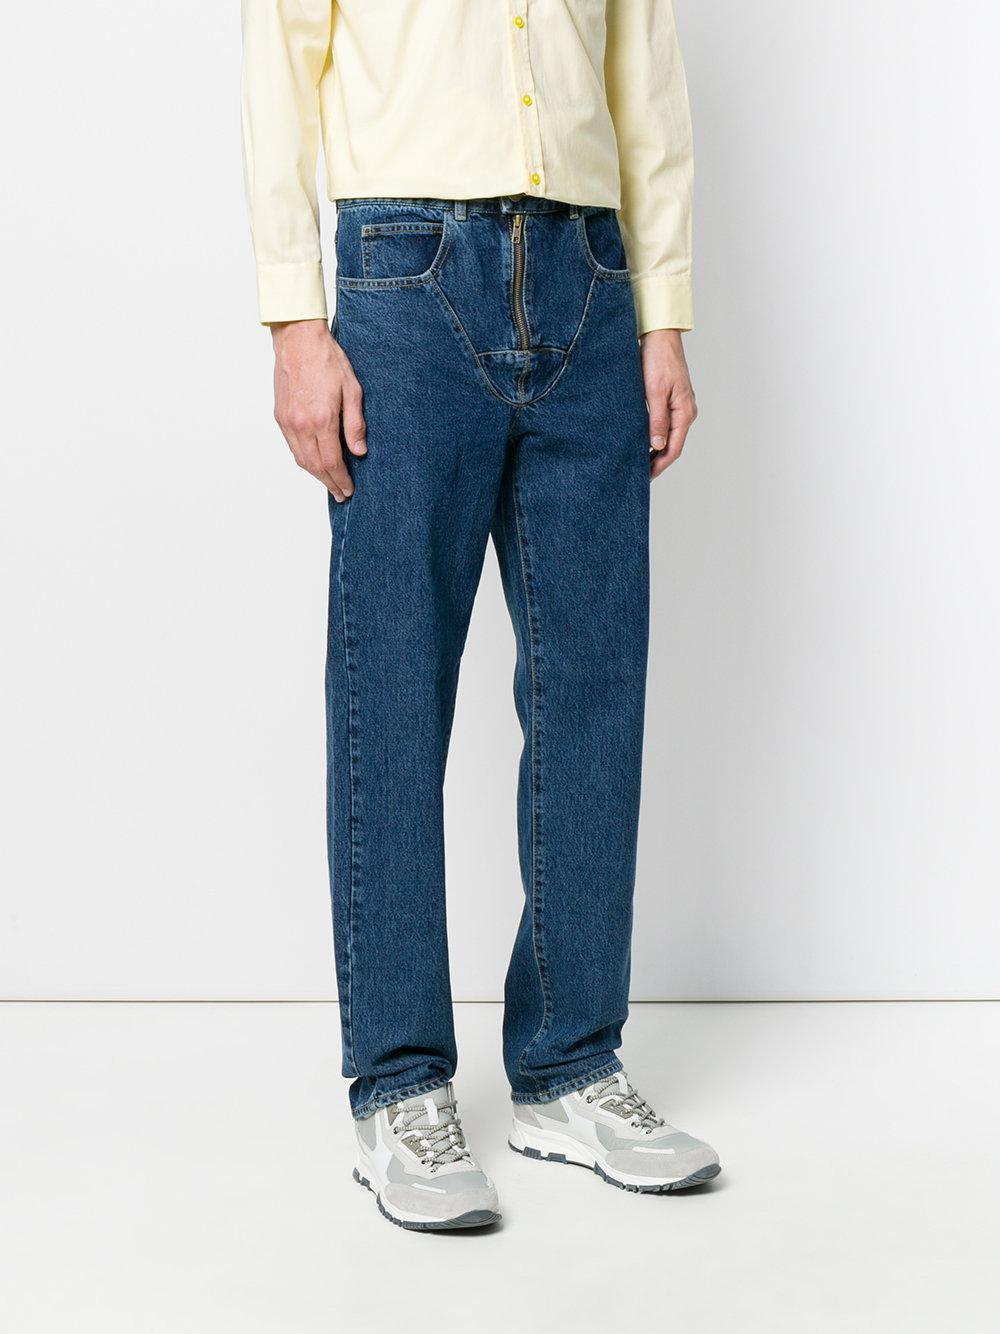 Martine Rose Denim Jock Strap Jeans in Blue for Men